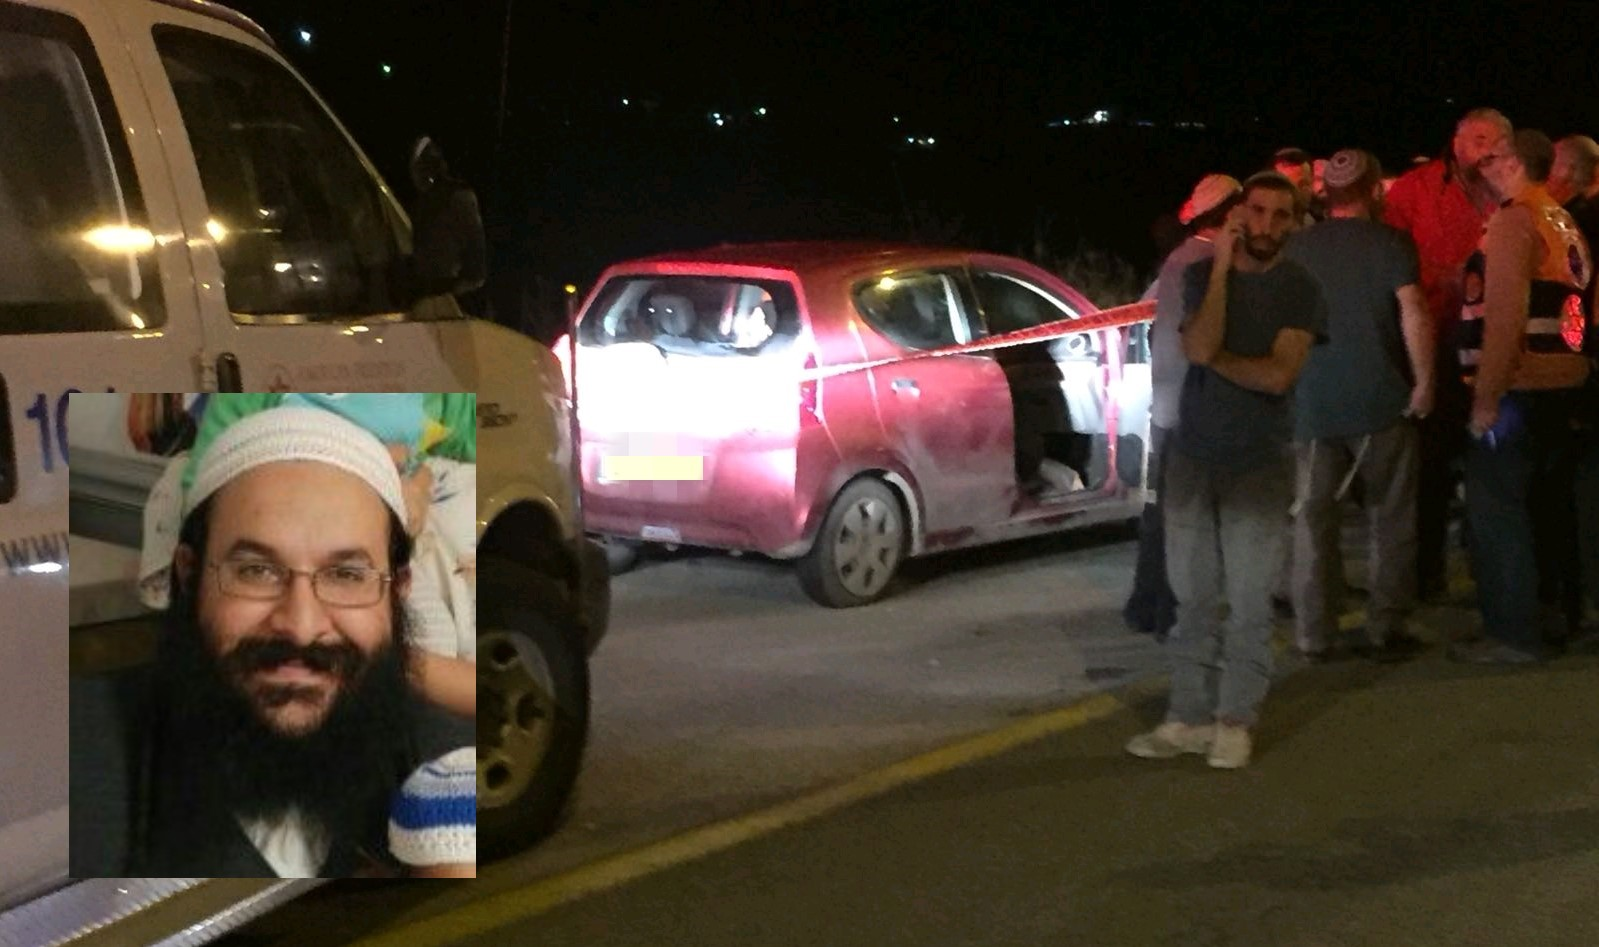 Search underway for suspects after fatal West Bank shooting of Israeli rabbi